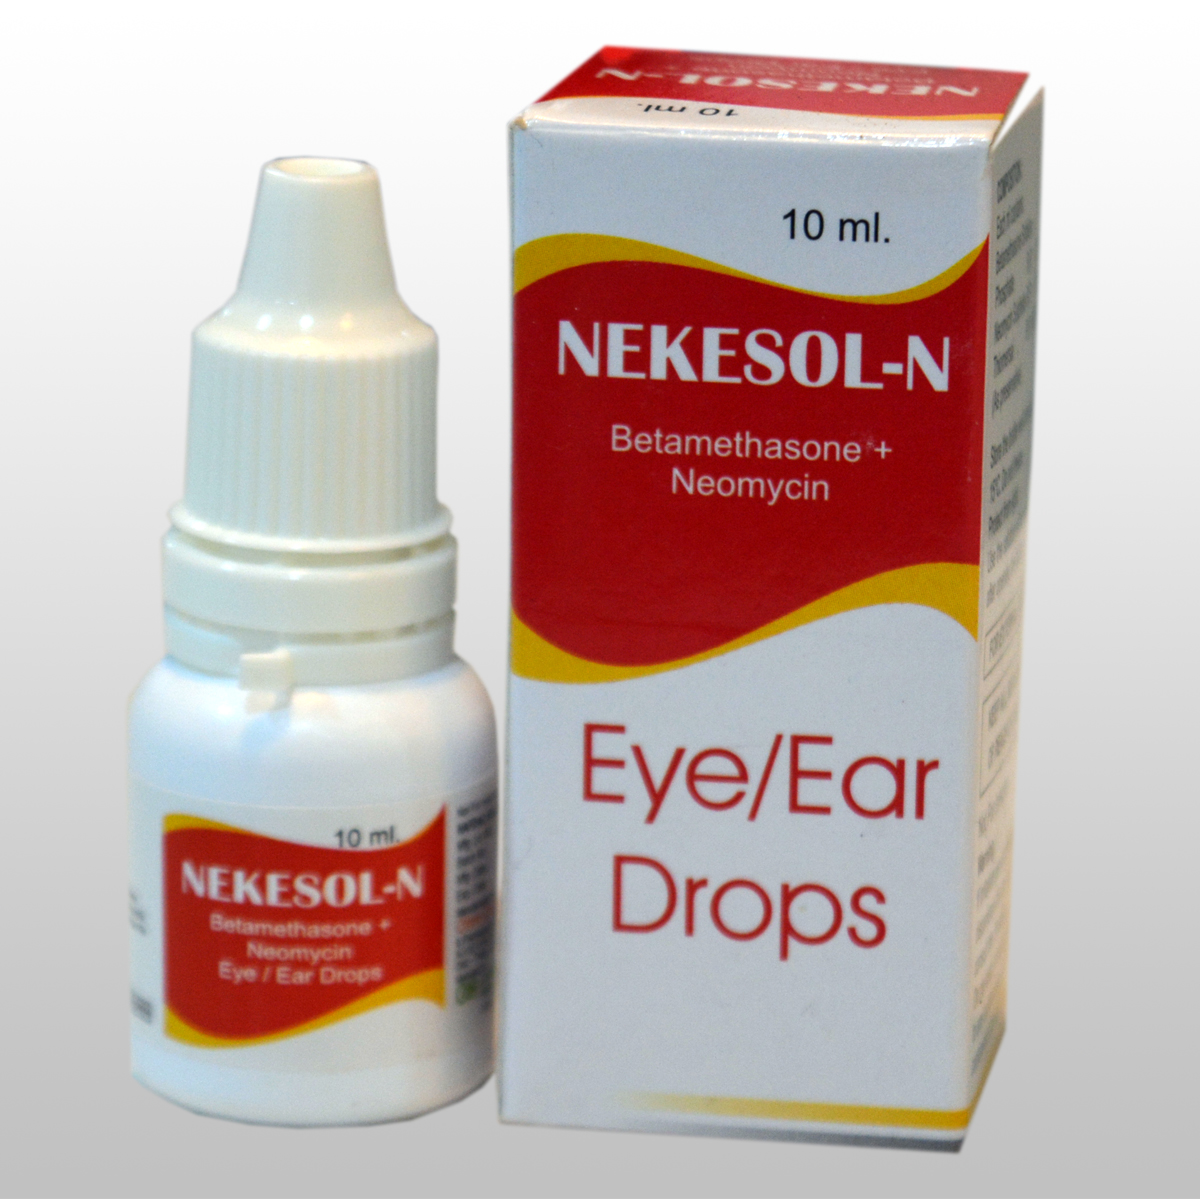 Betamethasone 0.1% w/v + Neomycin 0.5 % w/v  Eye/Ear drops